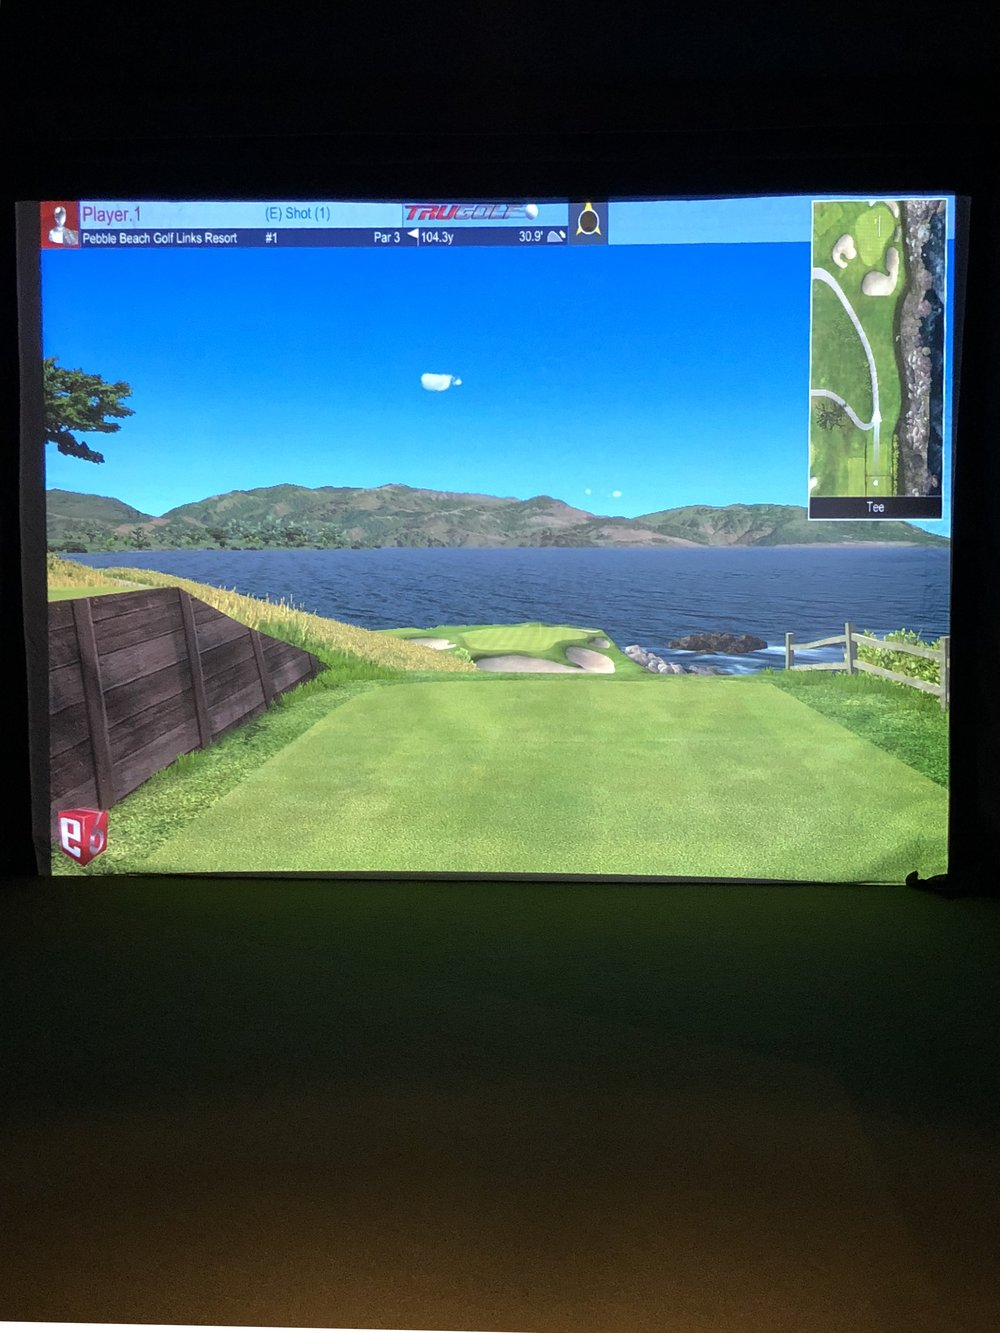 You can even play Pebble Beach without making the drive up to Monterey in our new TruGolf Simulator! Just ask us about our Coaching Programs and facility memberships.